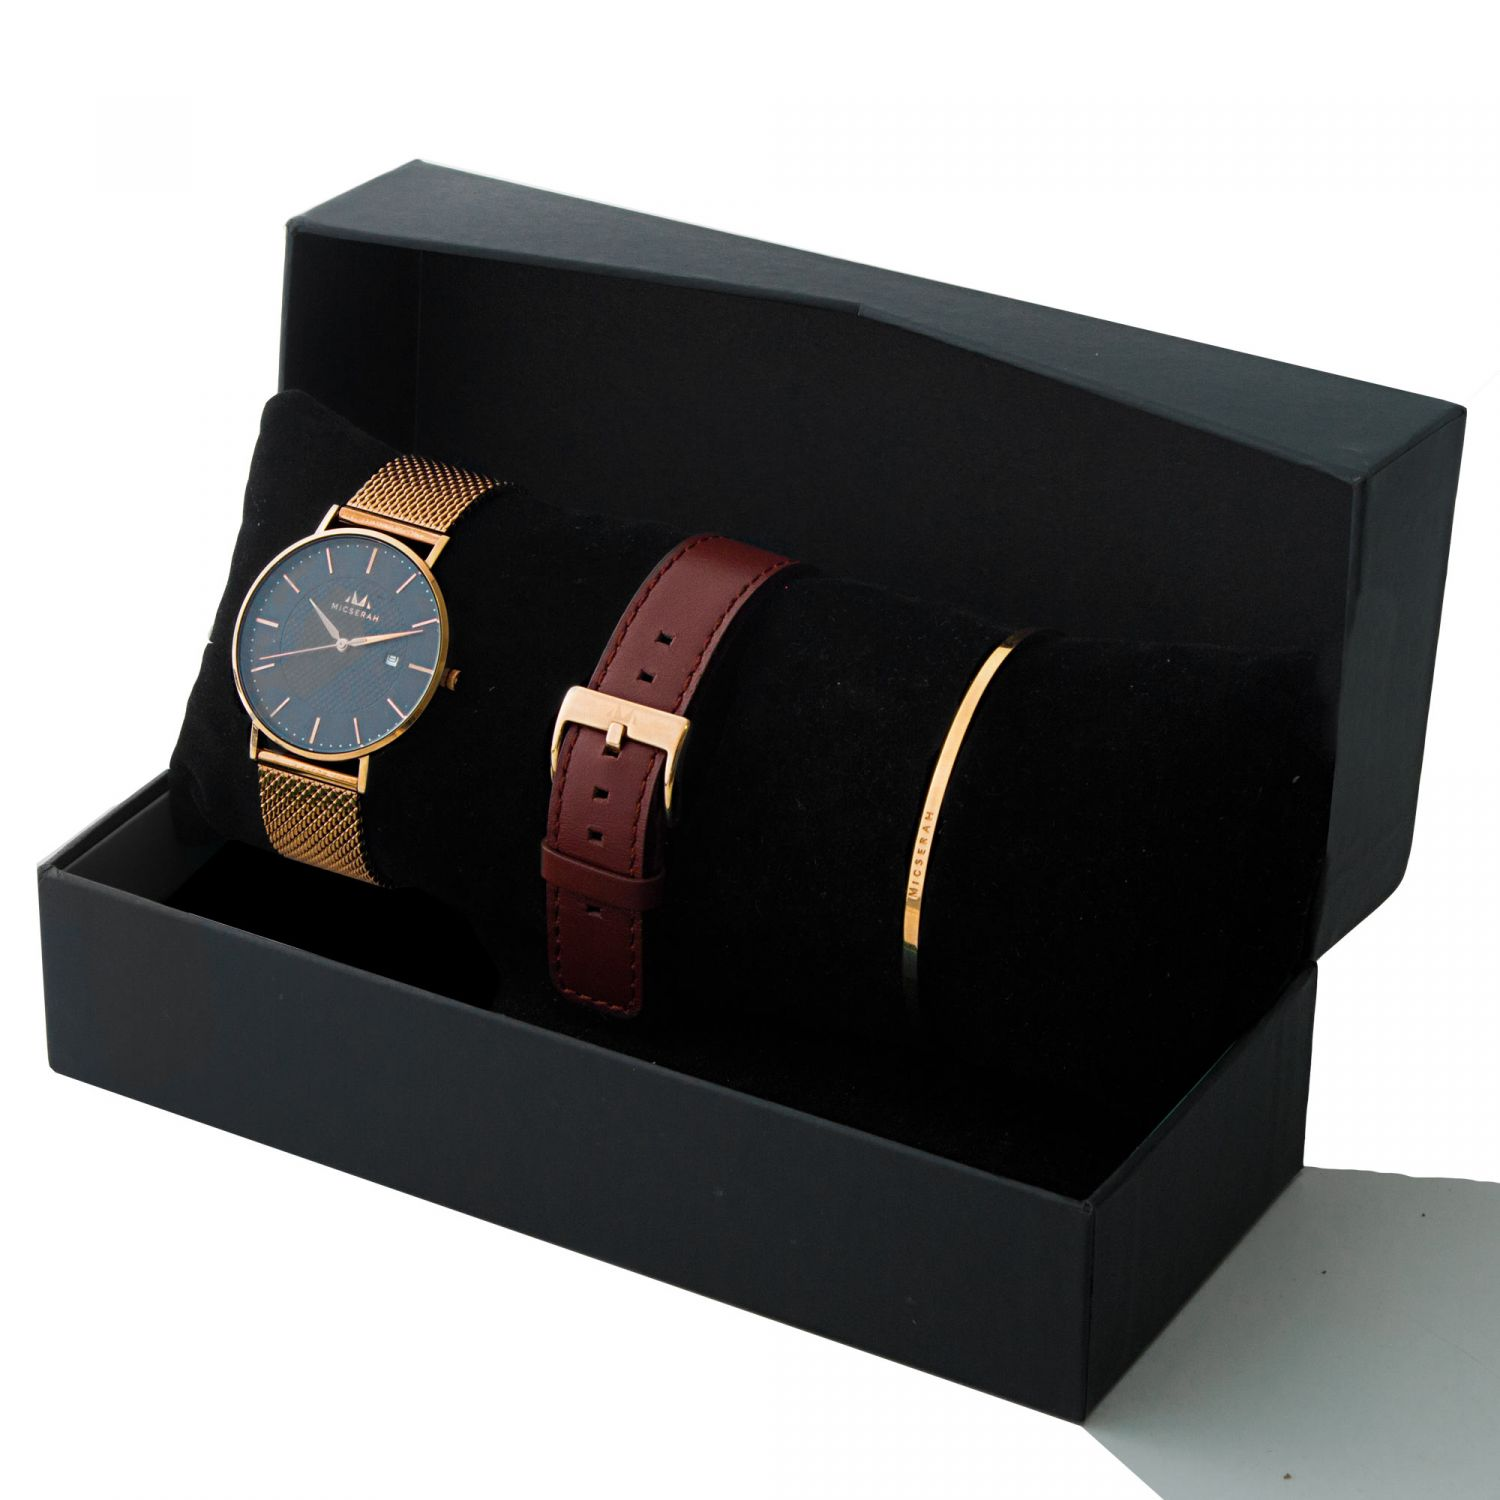 ROSE GOLD MOTIVE GIFT SET